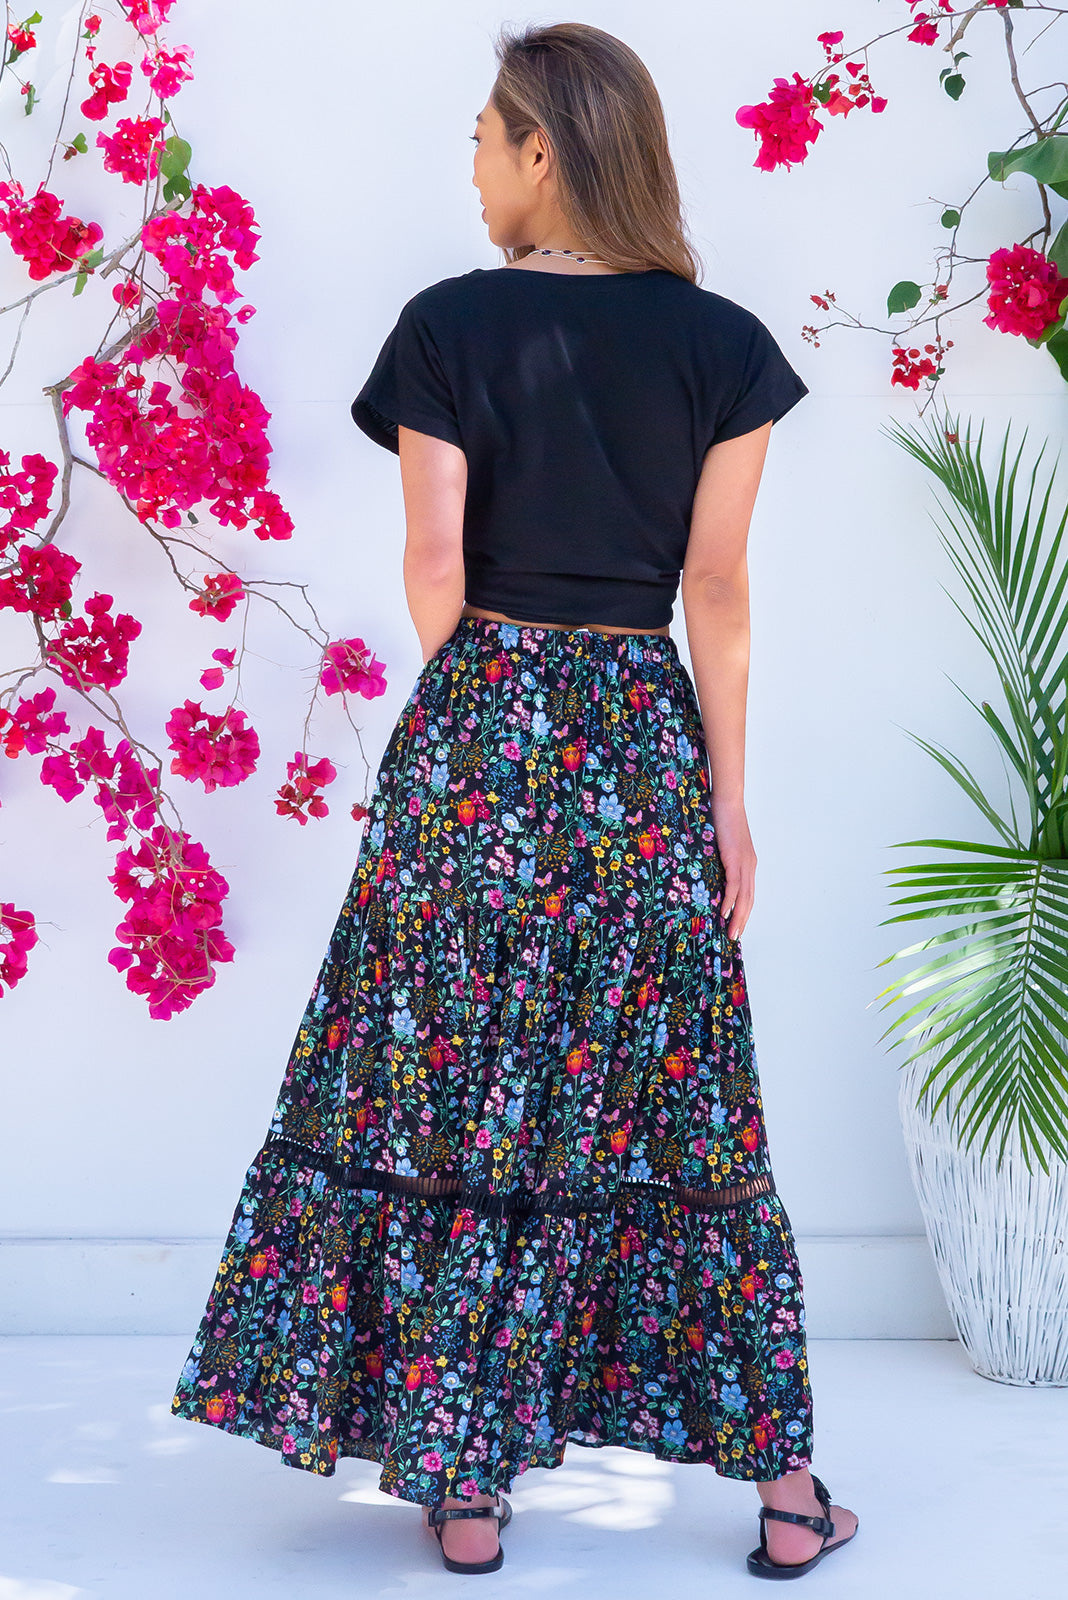 Black Bonnie Field Flowers Maxi Skirt! An enchanting bohemian style black maxi skirt with a vibrant rainbow of wild Spring flowers, comfortable drawstring waist, perfect for plus sized, curvy, tall, petite women. Great for street style, festival, holidays, night out. Pair with a Tee. Designed in Brisbane, Australia